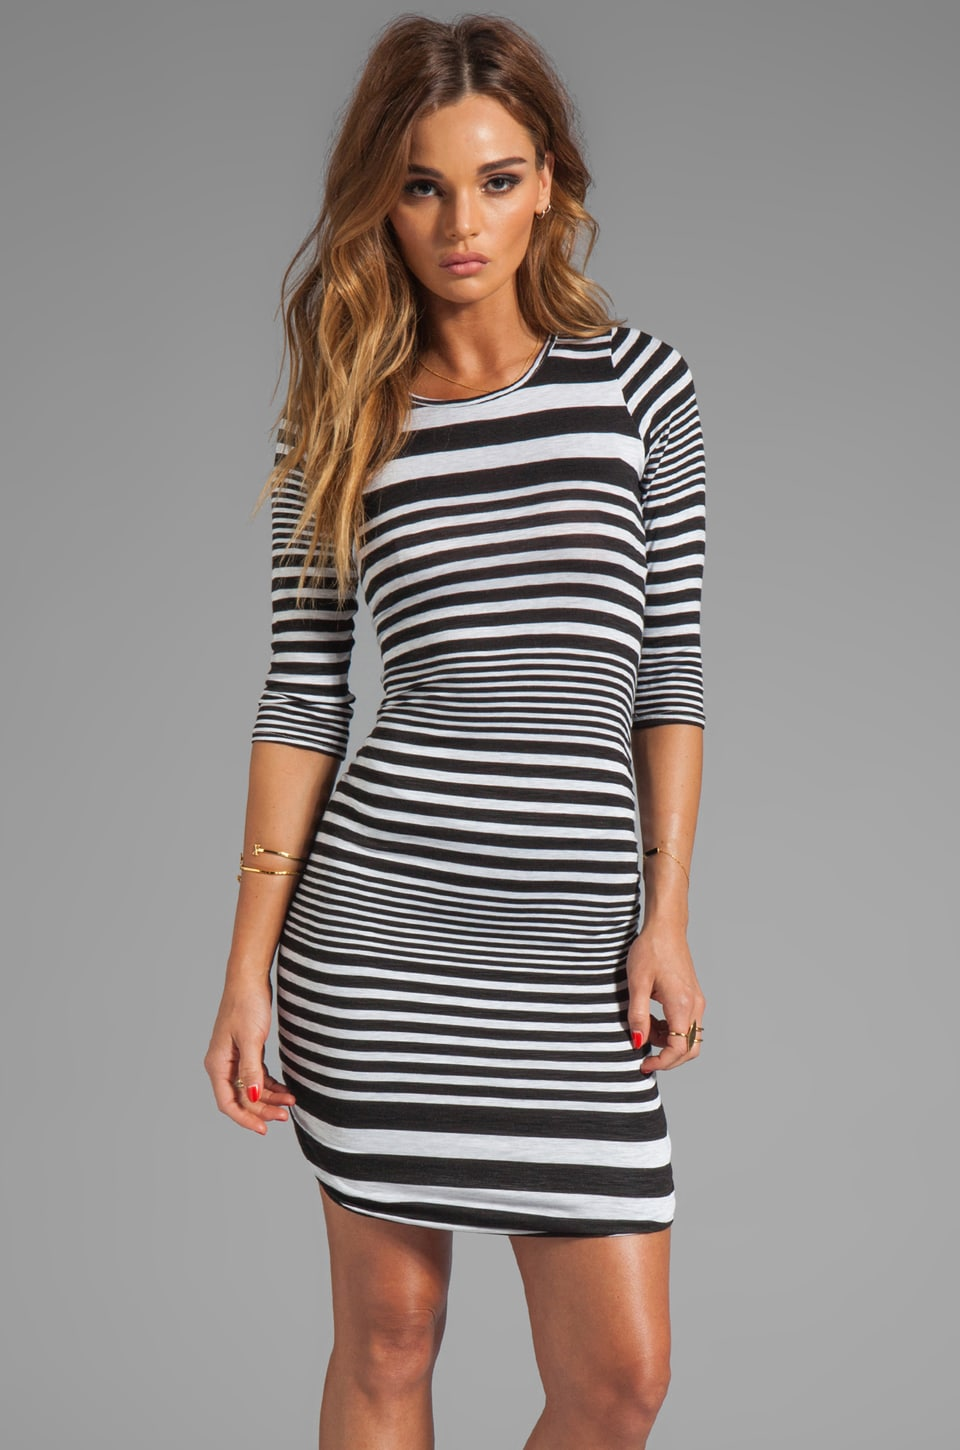 dolan Shirred Stripe Dress in Sailor